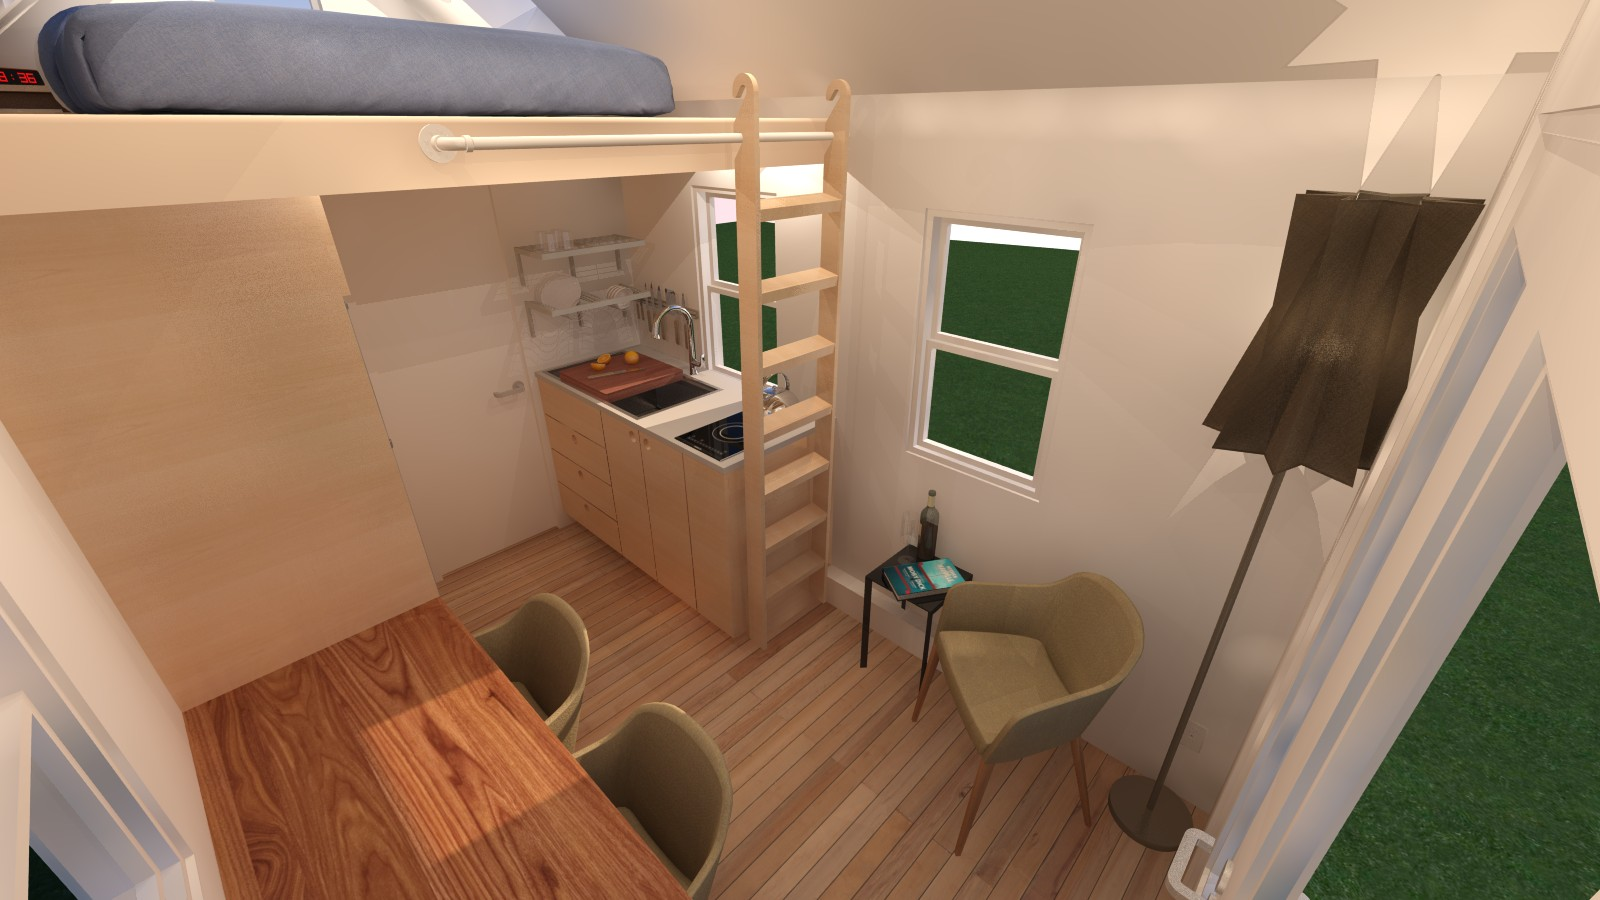 18 tiny house designs for Micro home designs